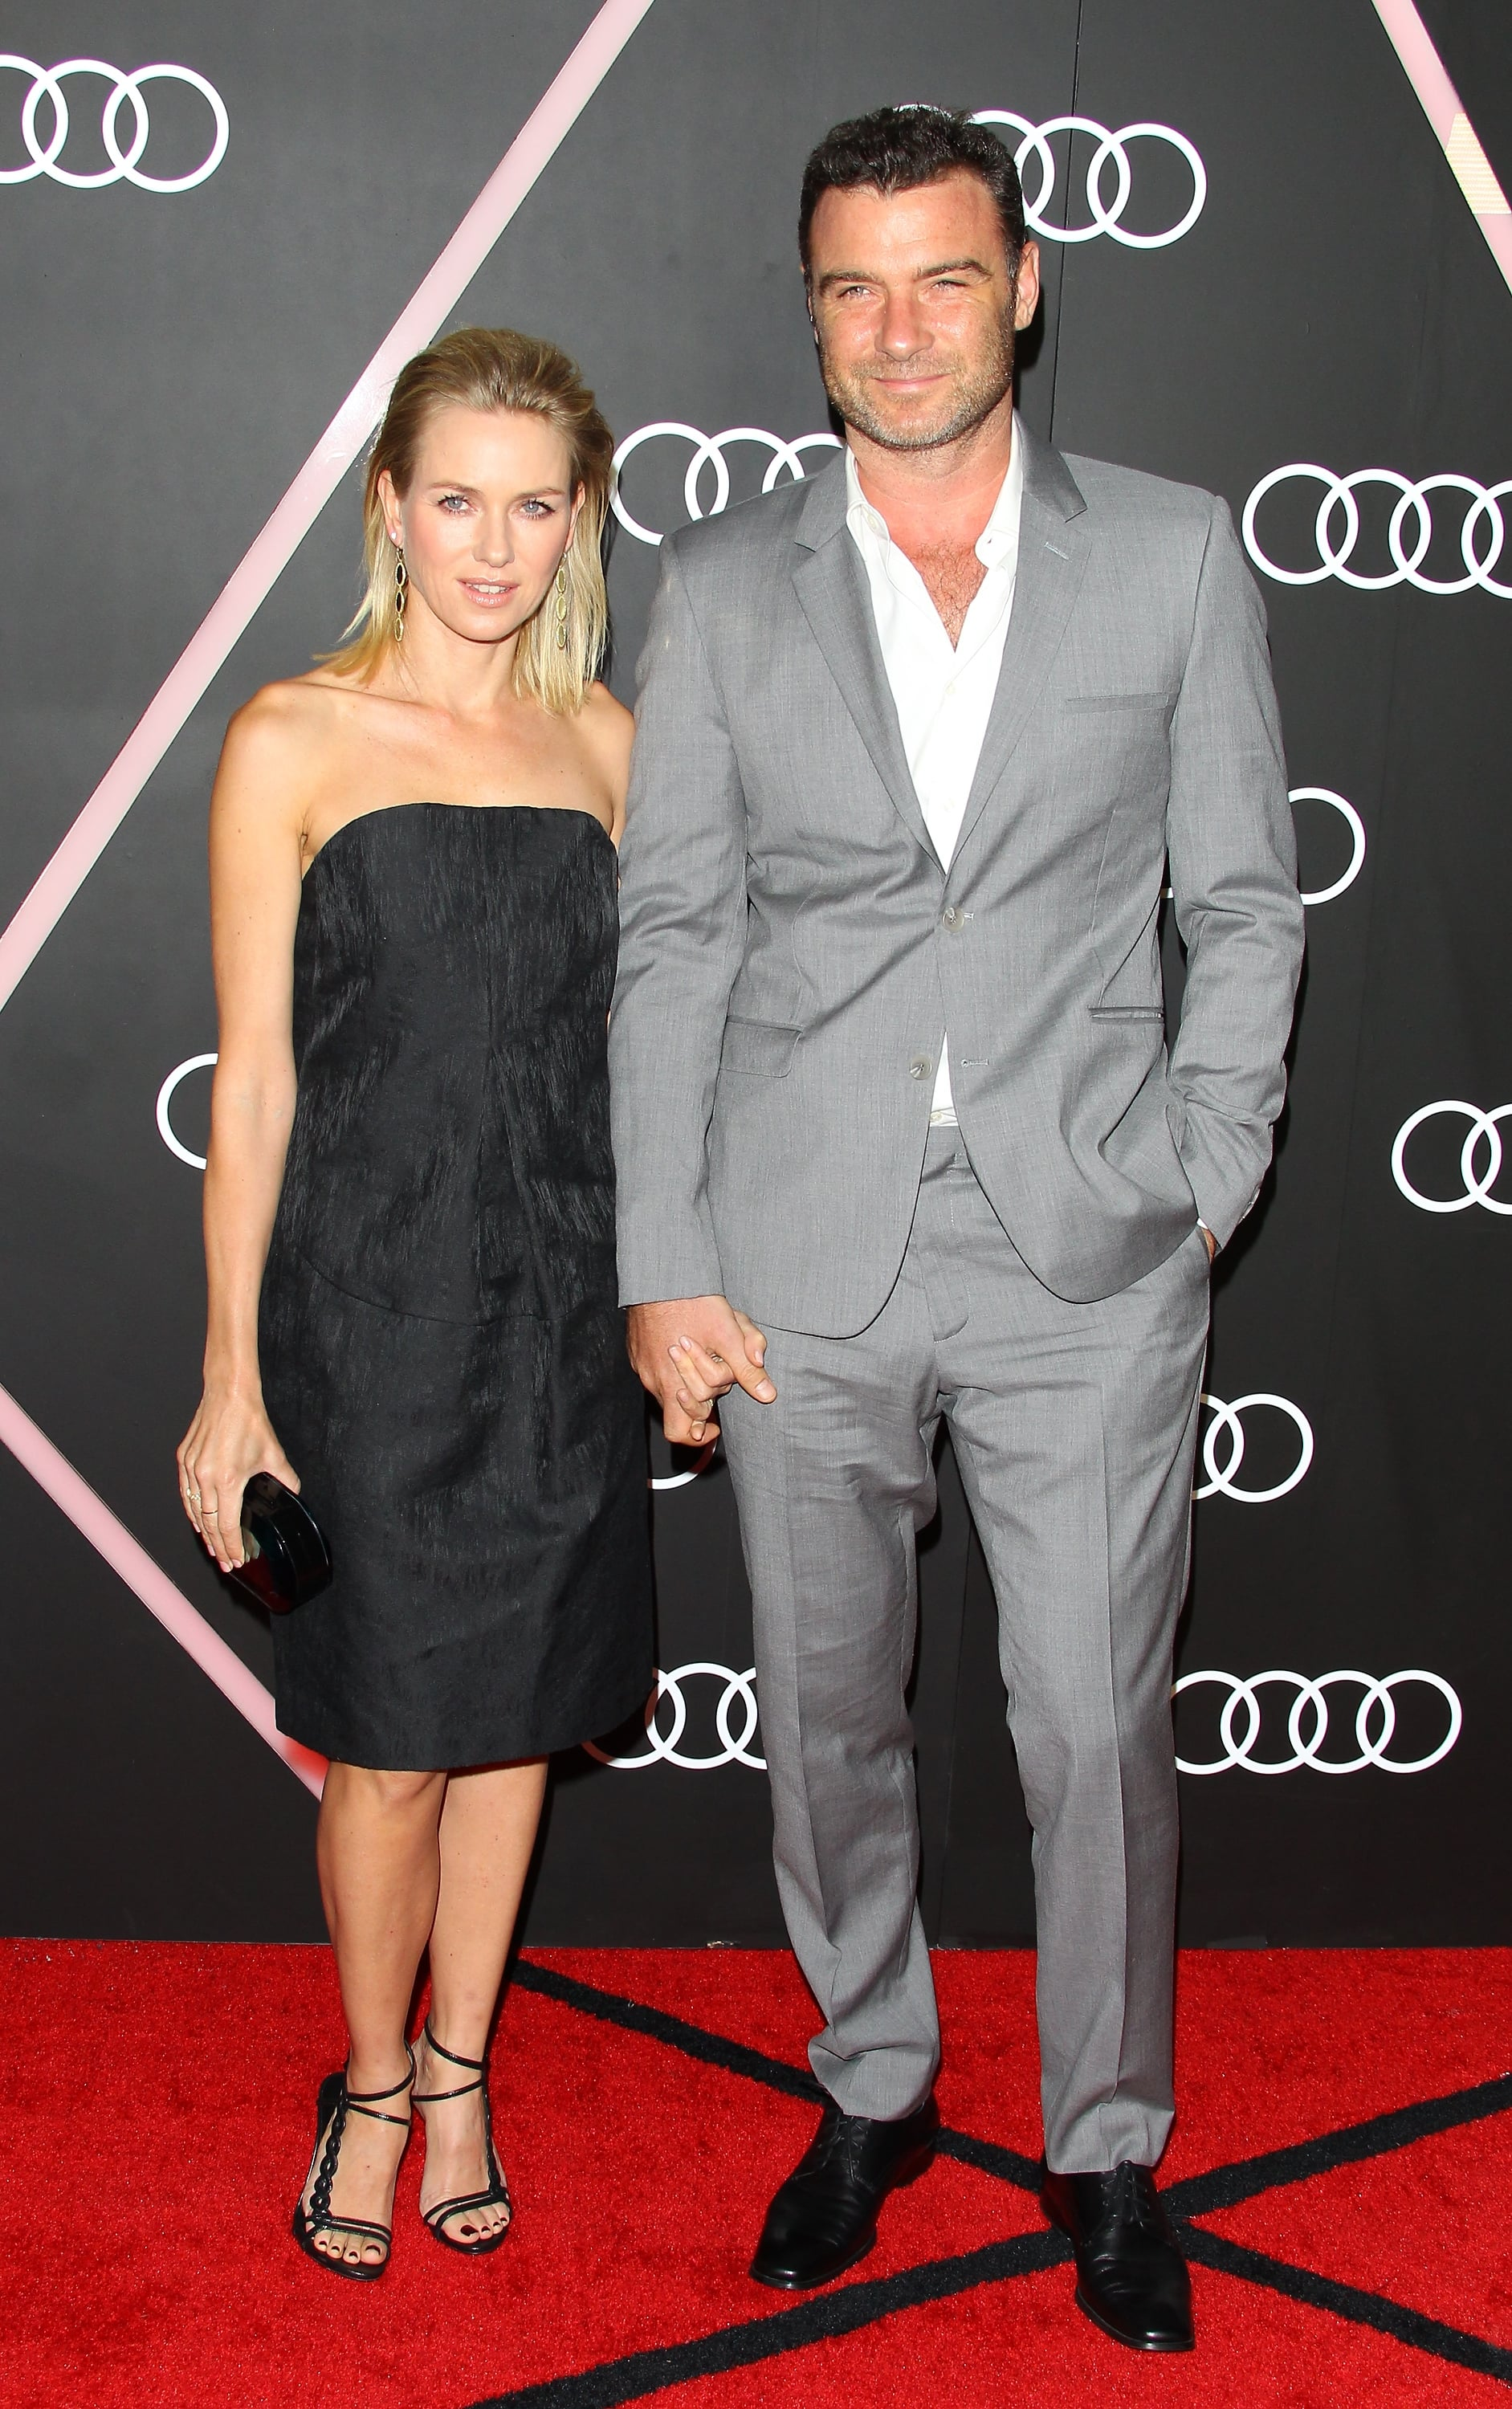 Naomi and Liev held hands on the carpet.